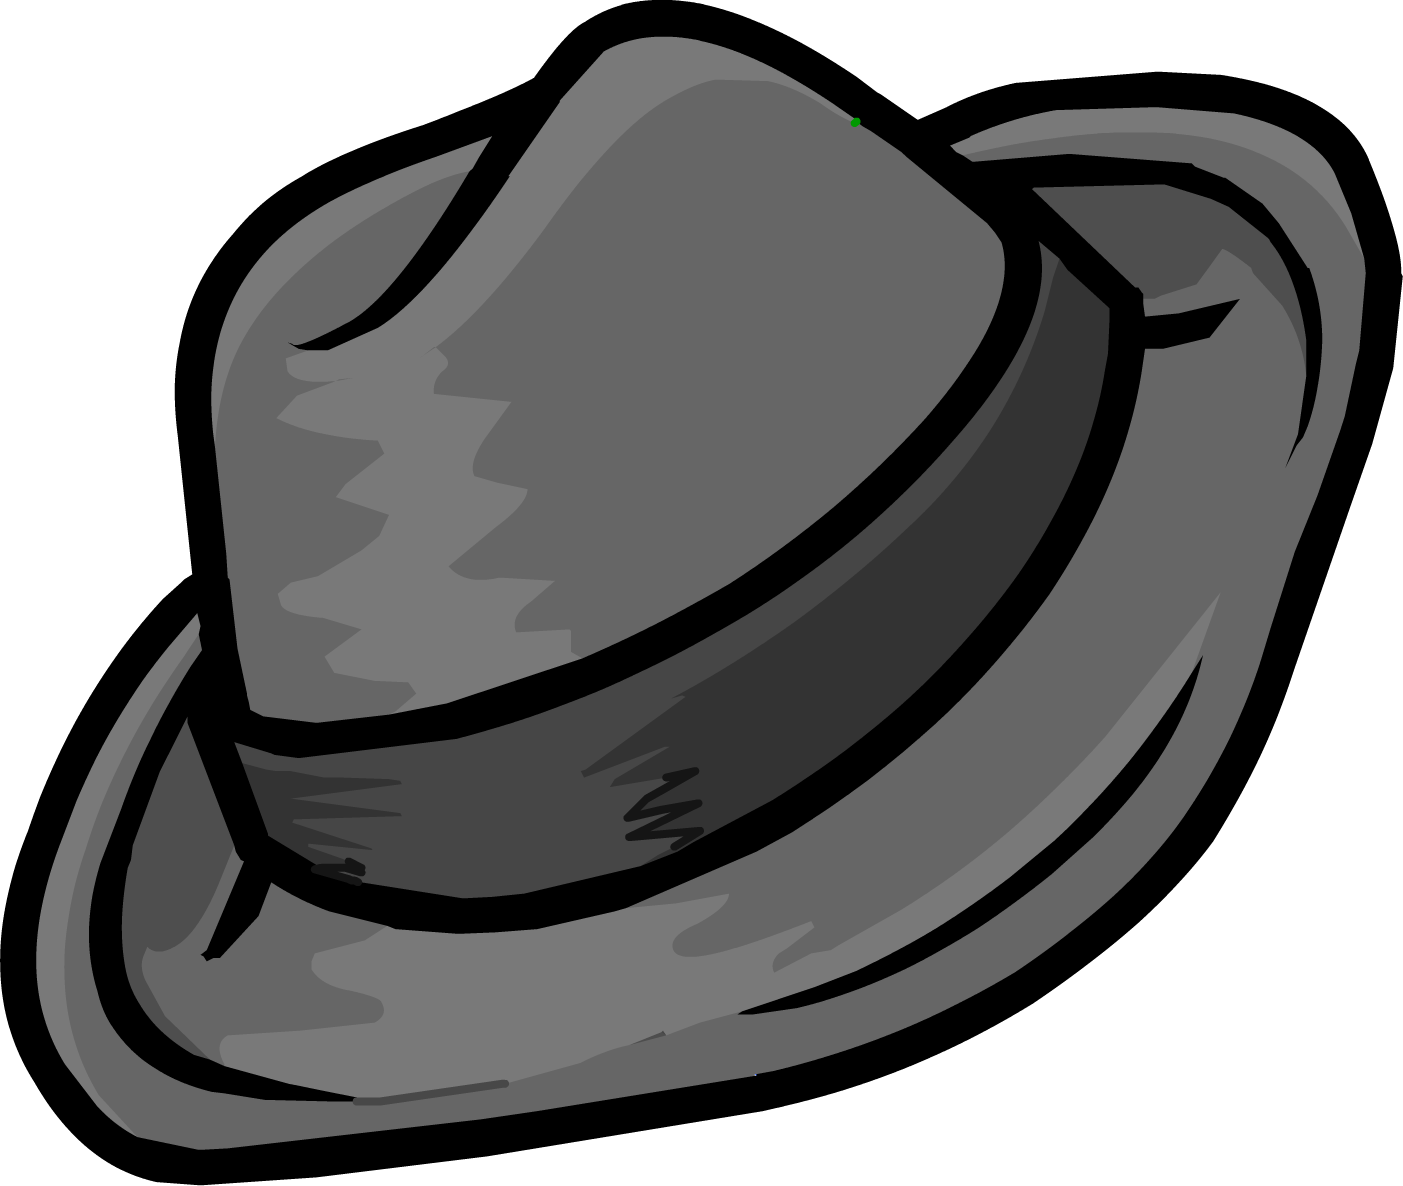 Fedora Clipart | Free download best Fedora Clipart on ClipArtMag com